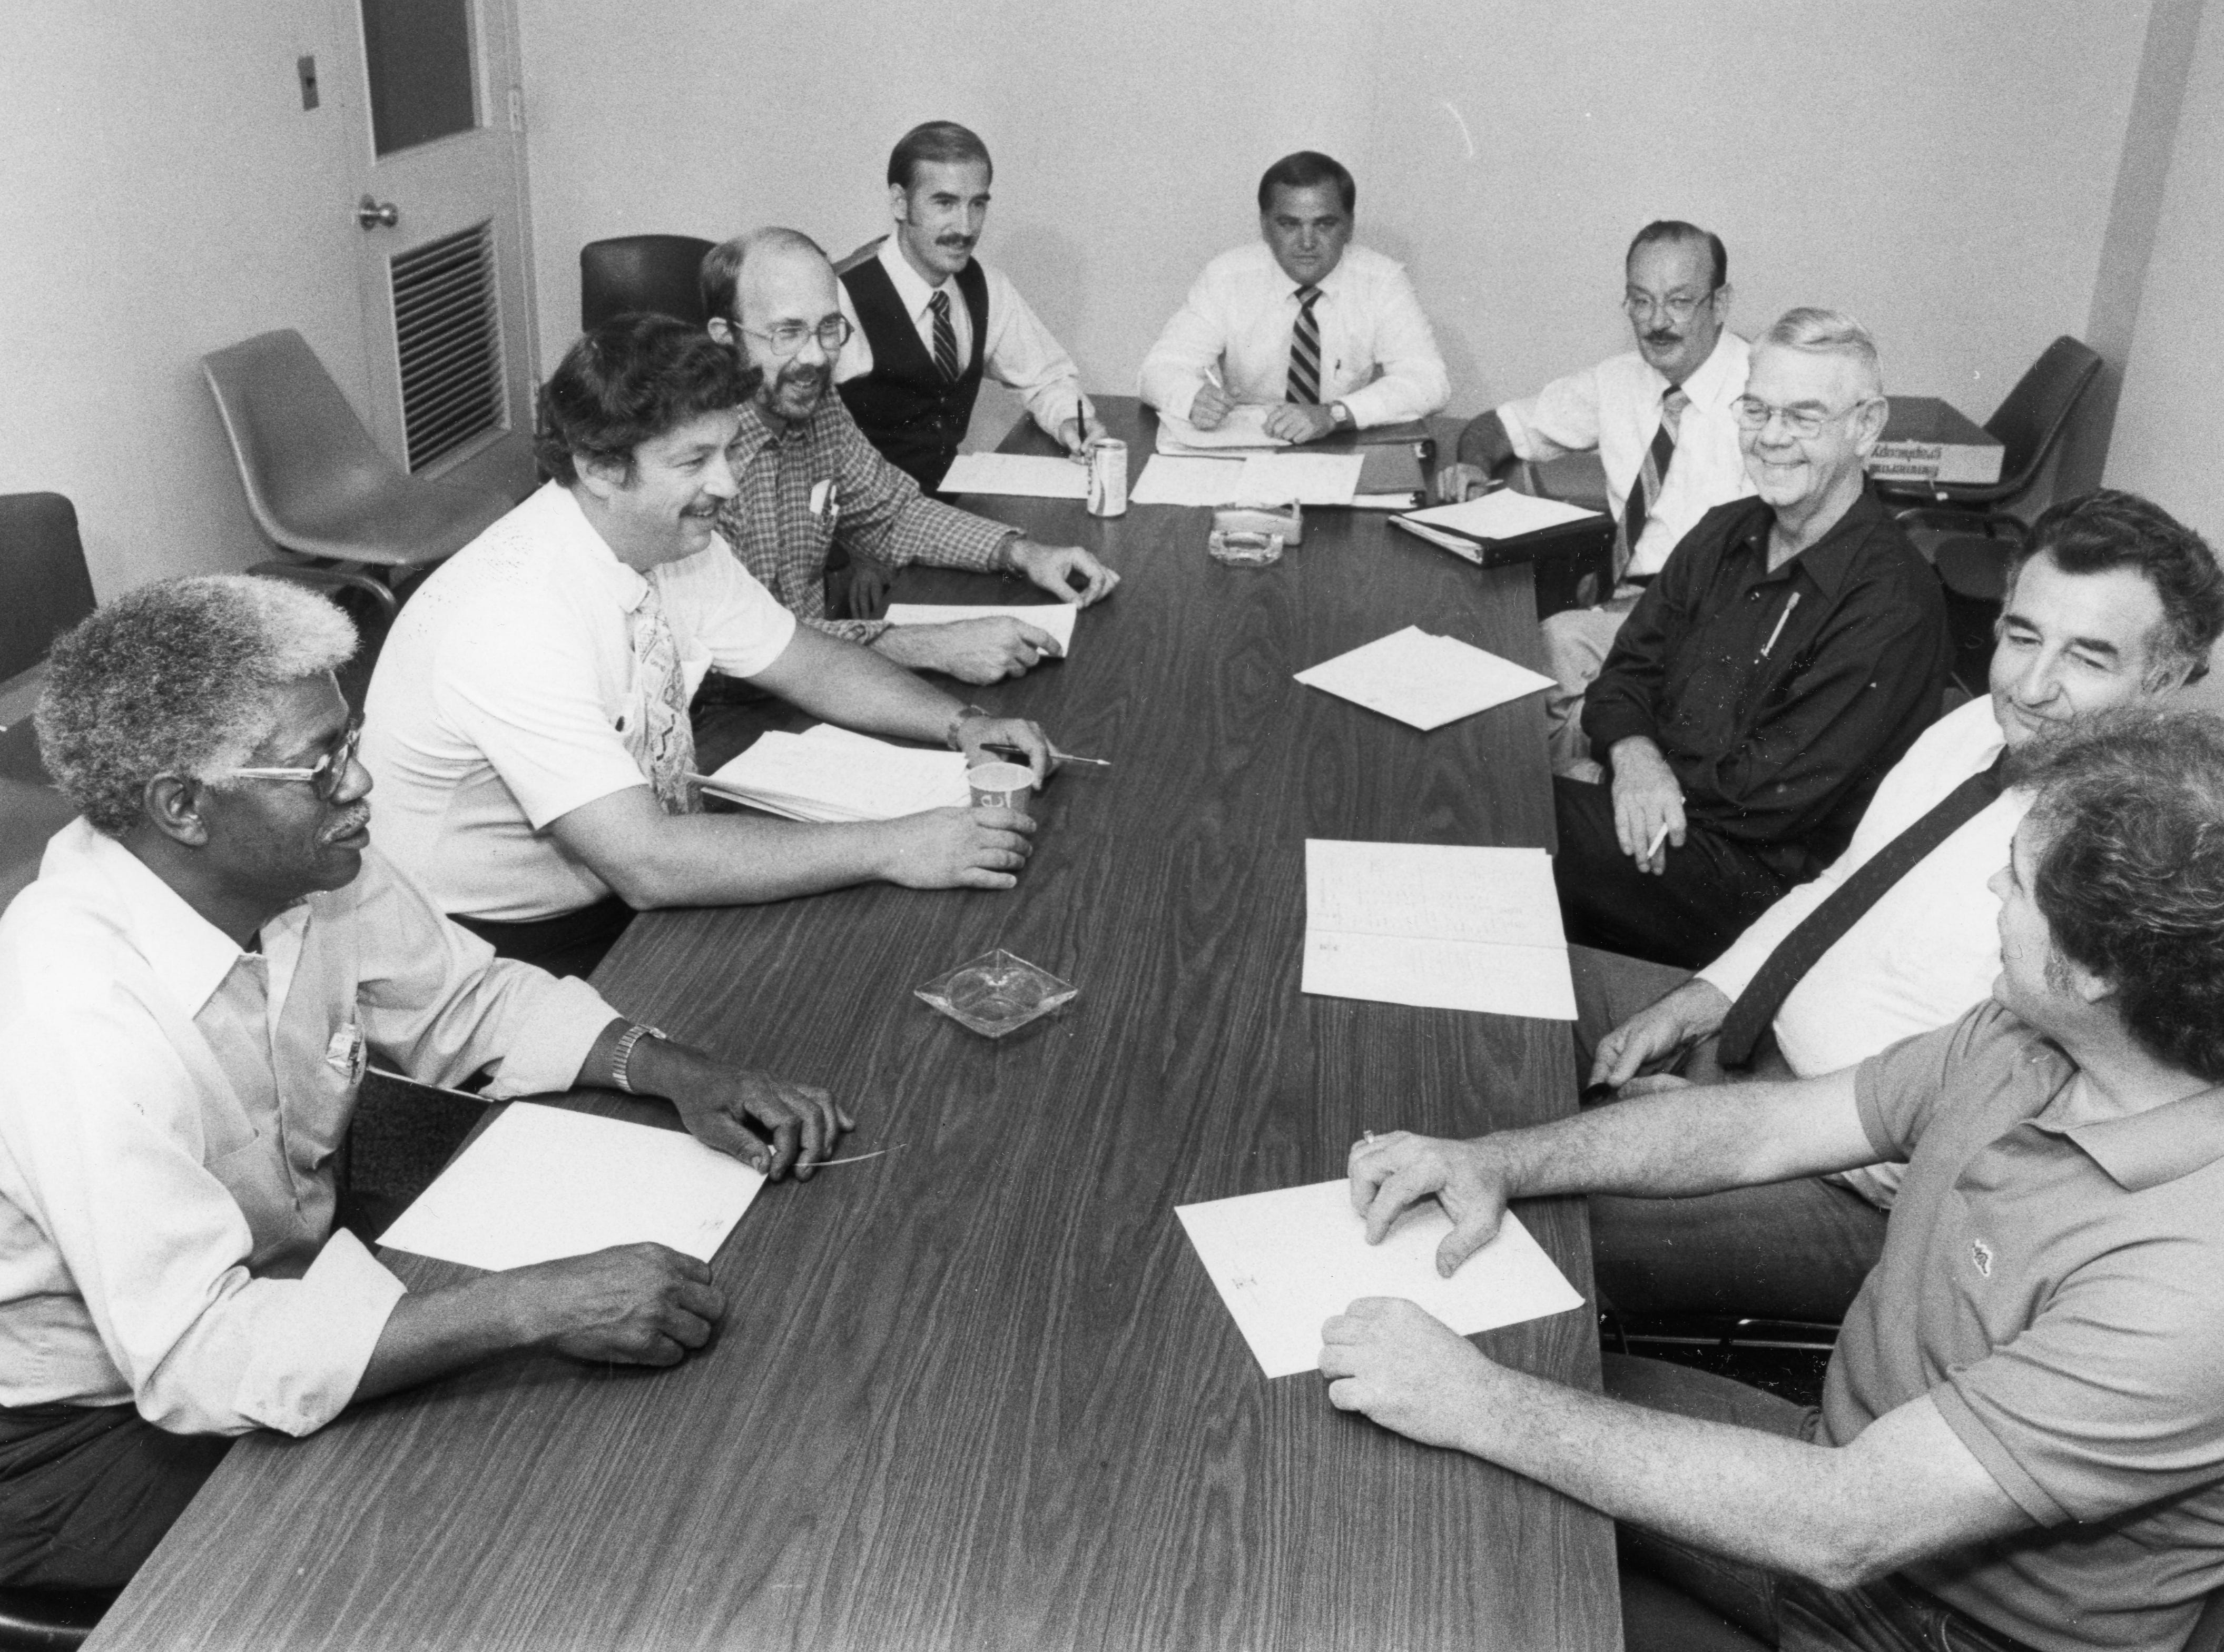 News Sentinel production department managers, from left, Jesse Carrington, unidentified, John McNeil, Mike Corum, Ted Milligan, Bob Austin, Charlie Walston, Doug Holt and unknown. Undated photo.